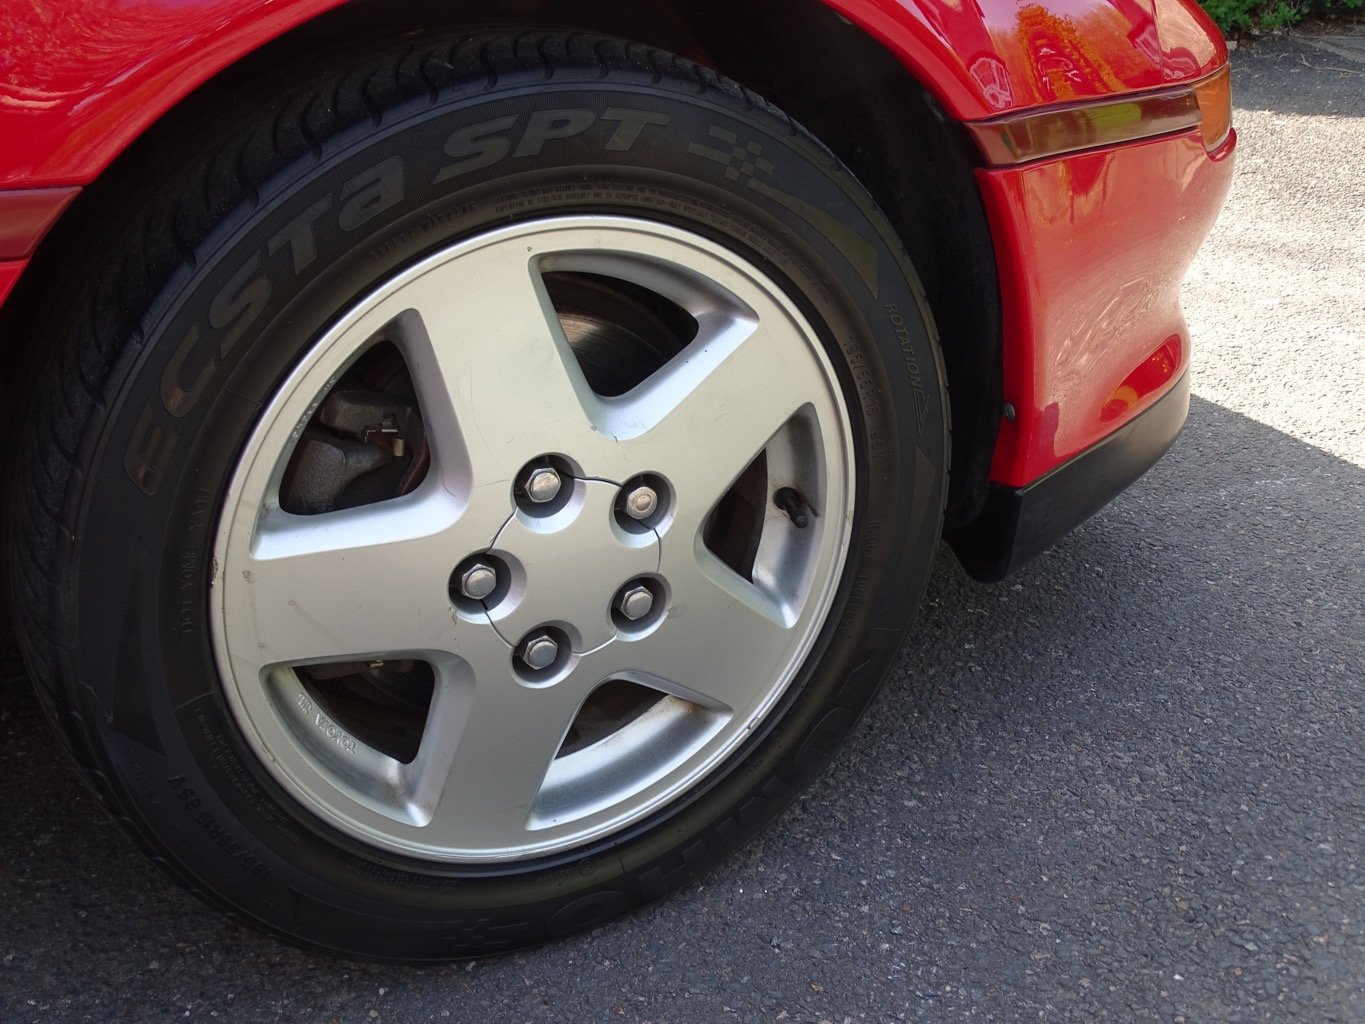 MR2 MK2 1993 red reduced price For Sale (picture 5 of 6)